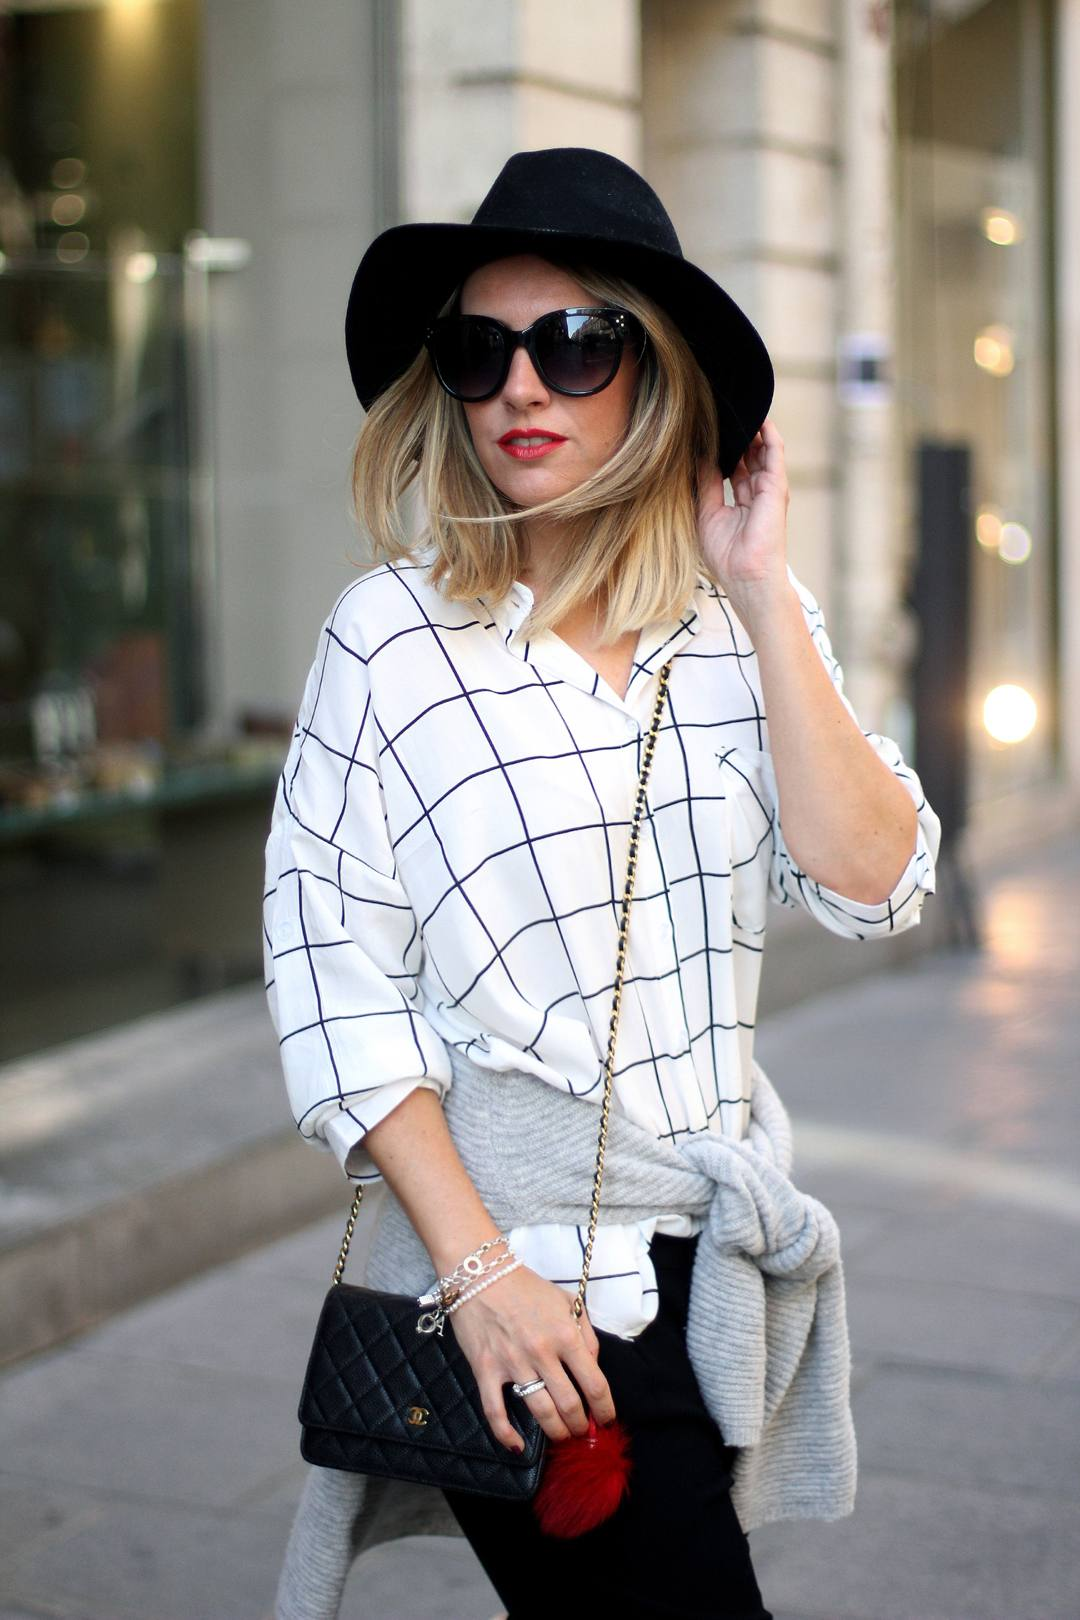 Paris-fashion-blogger-mesvoyagesaparis-2015 (5)2